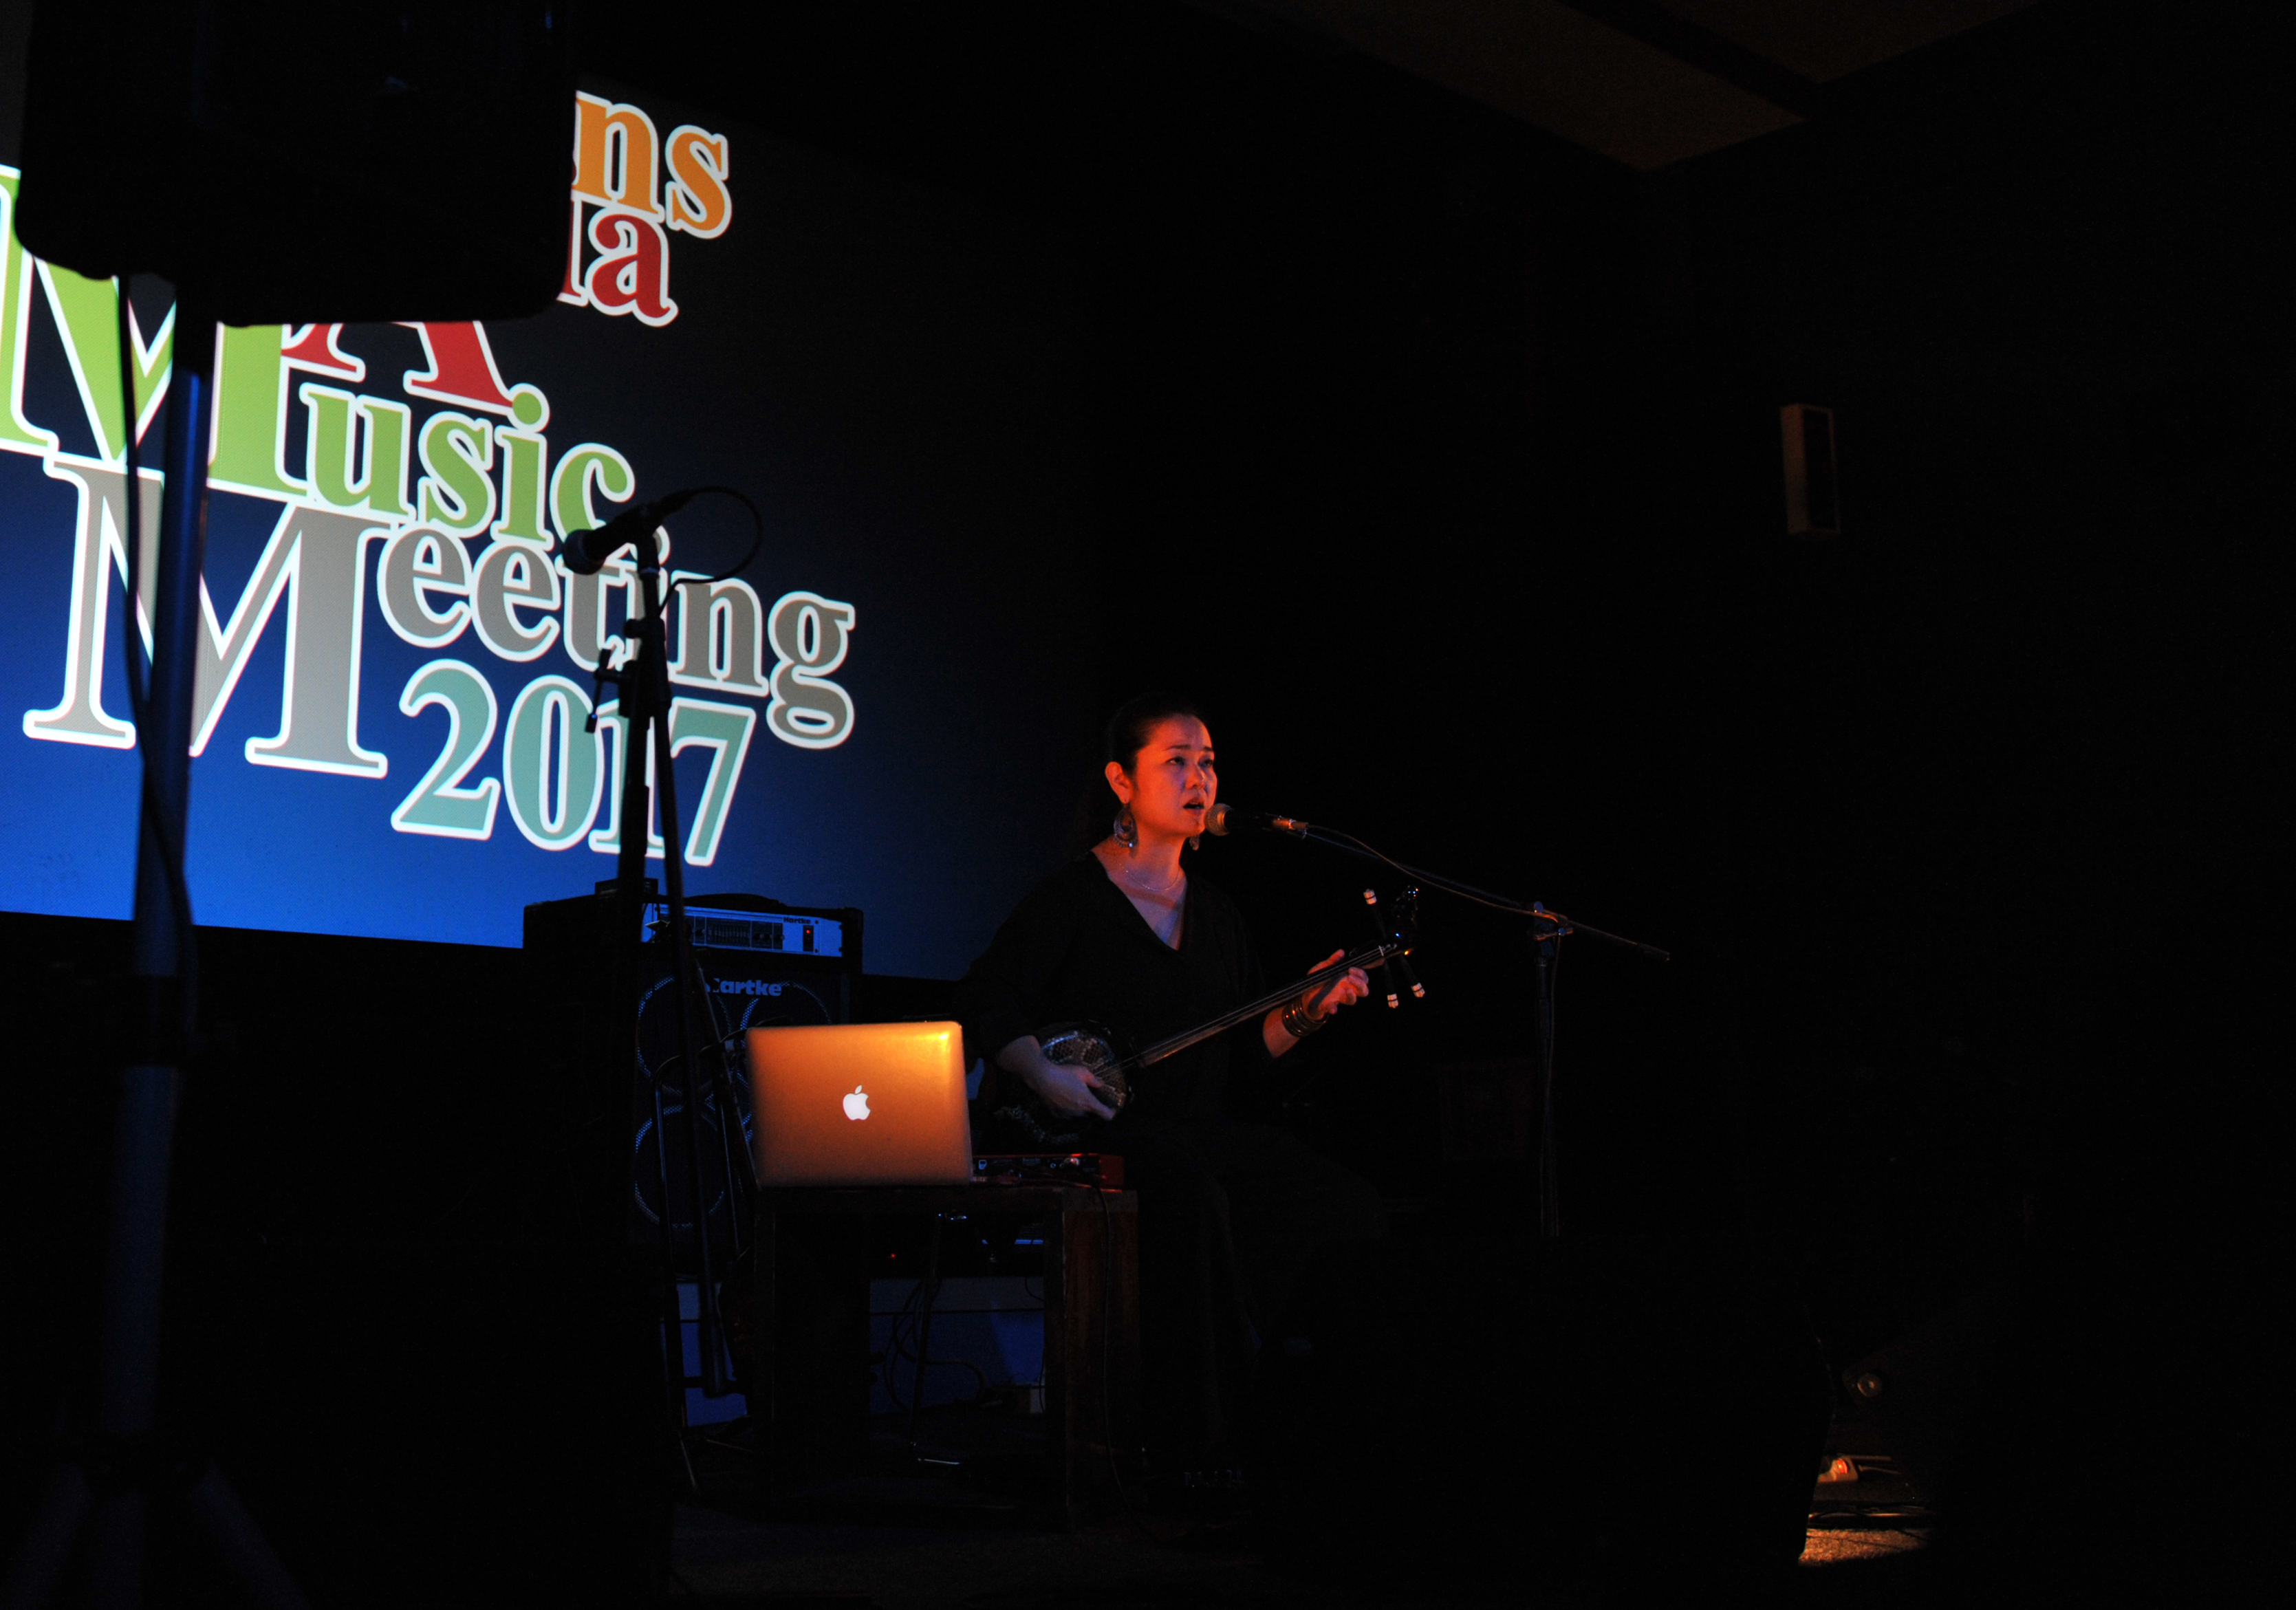 Trans Asia Music Meeting 2017